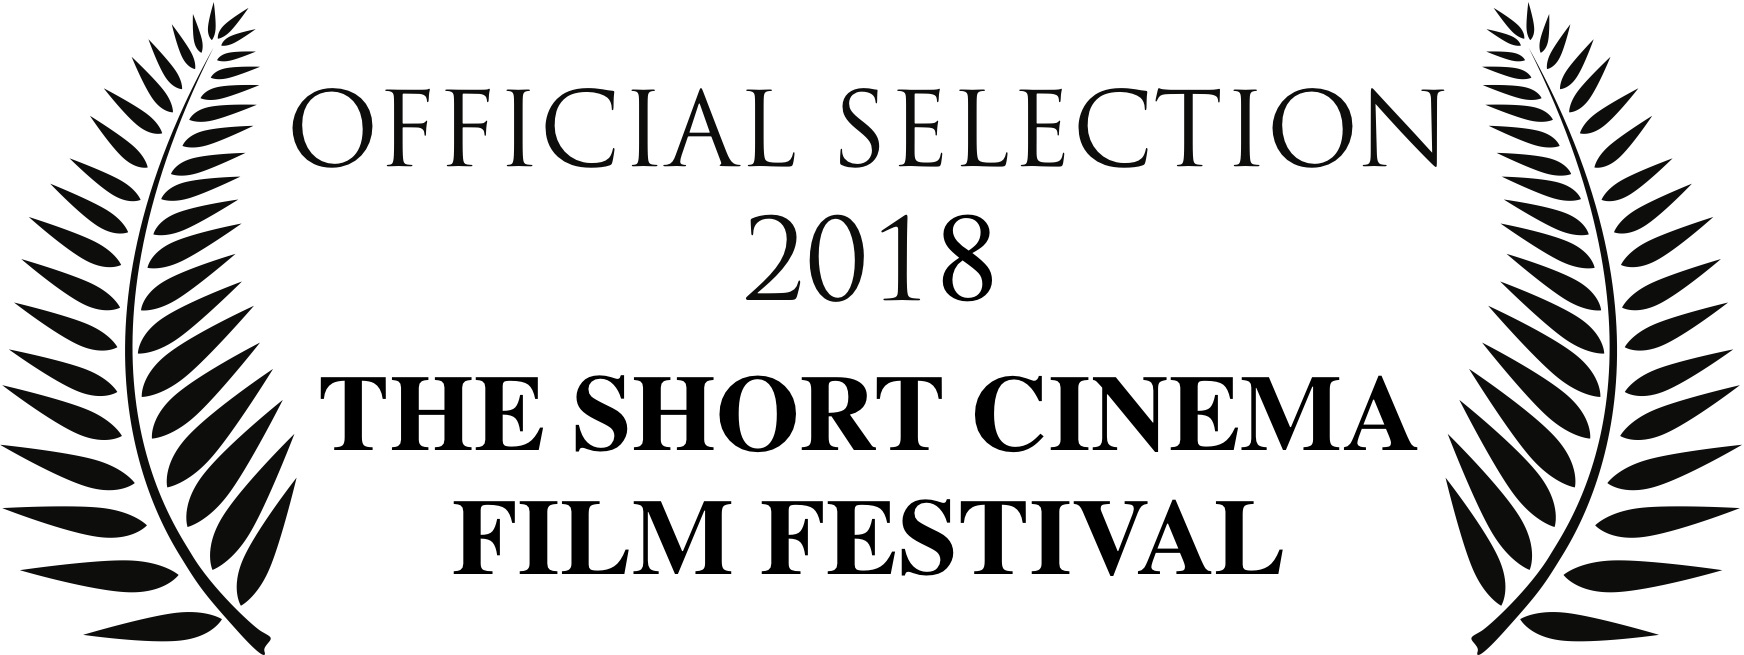 11. The Short Cinema.jpg